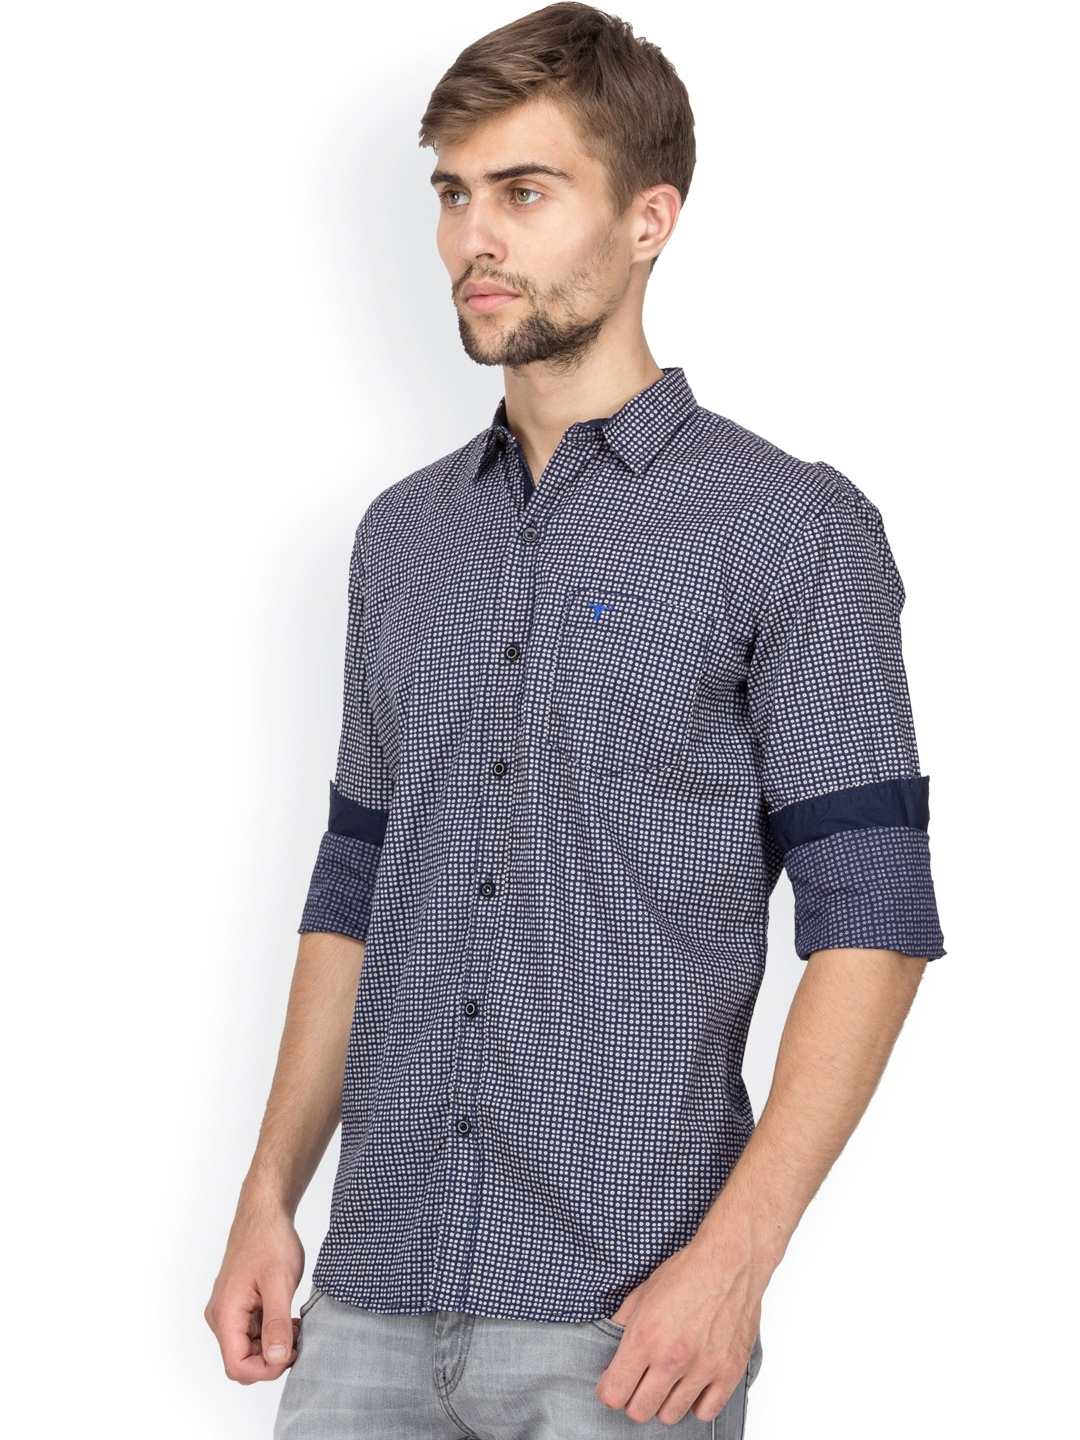 Myntra Le Bison Navy Printed Tailored Fit Casual Shirt